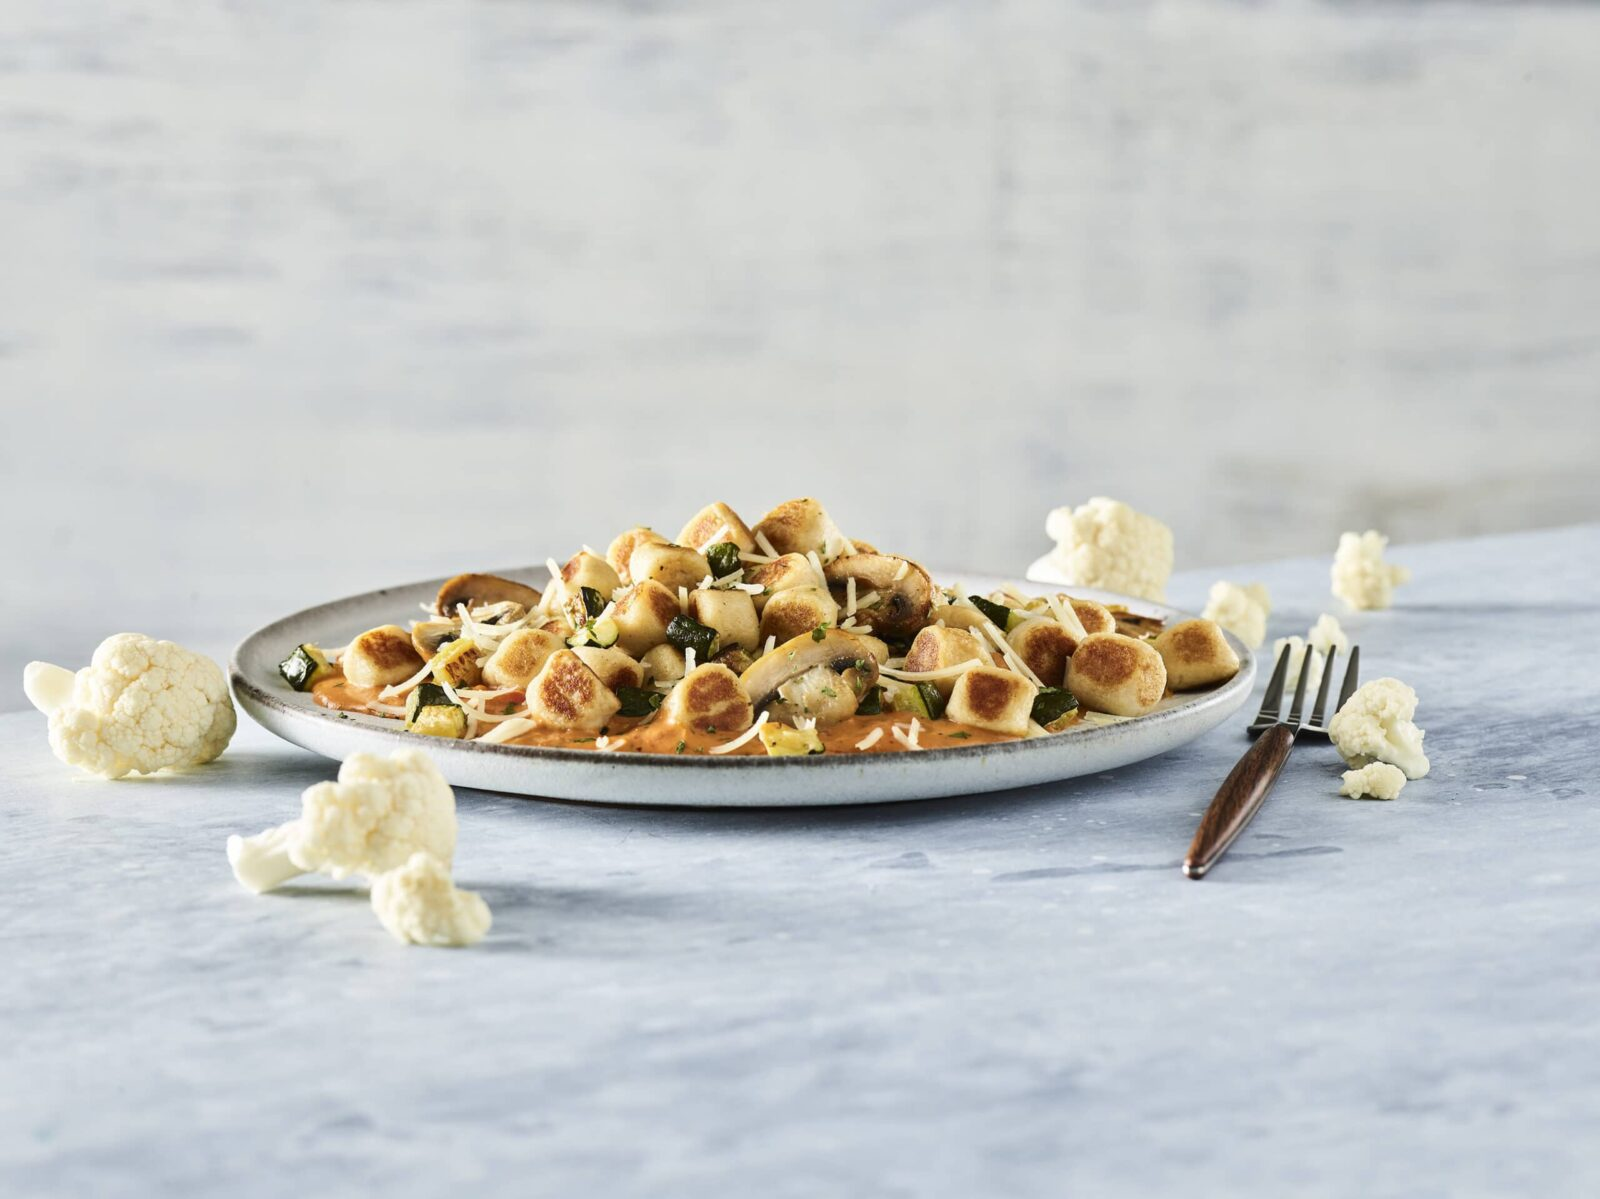 Noodles & Company Launches Industry-First Cauliflower Gnocchi